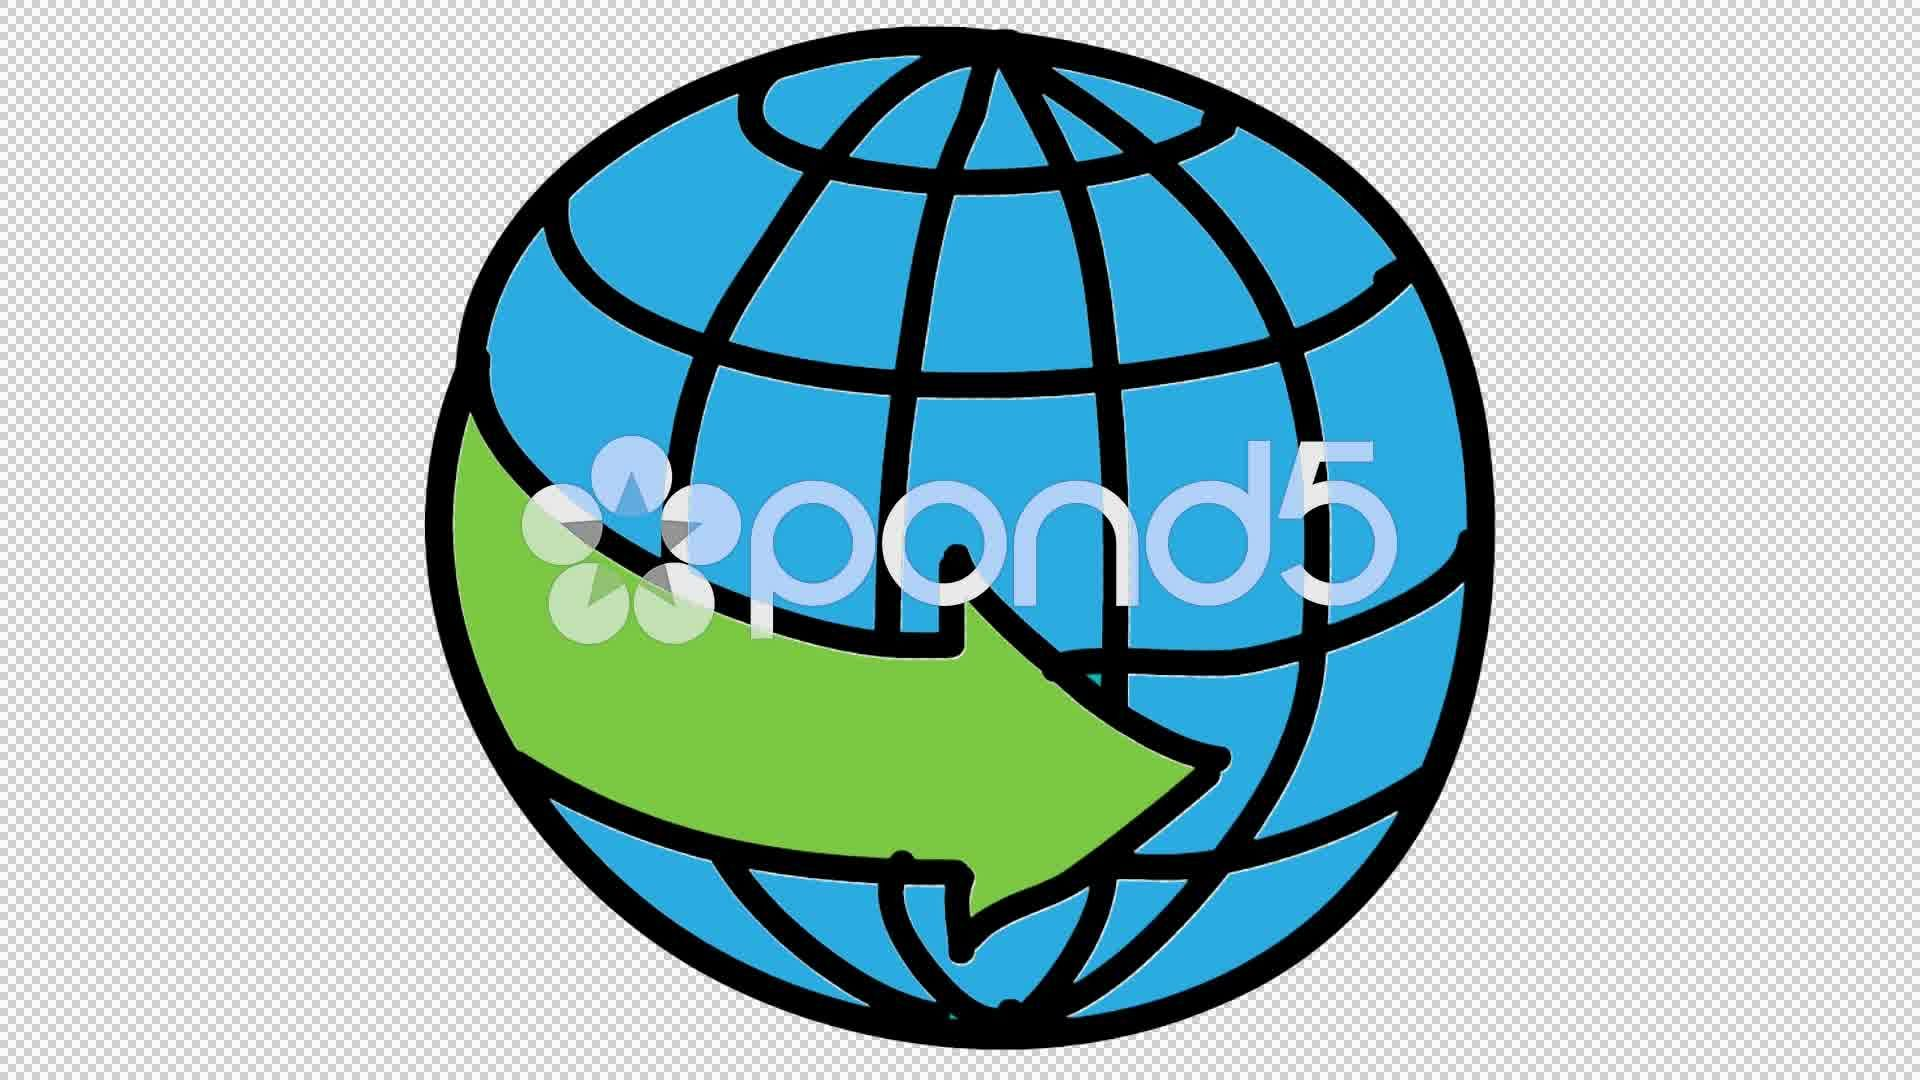 clip royalty free library Transparent videos arrow. Globe animation with background